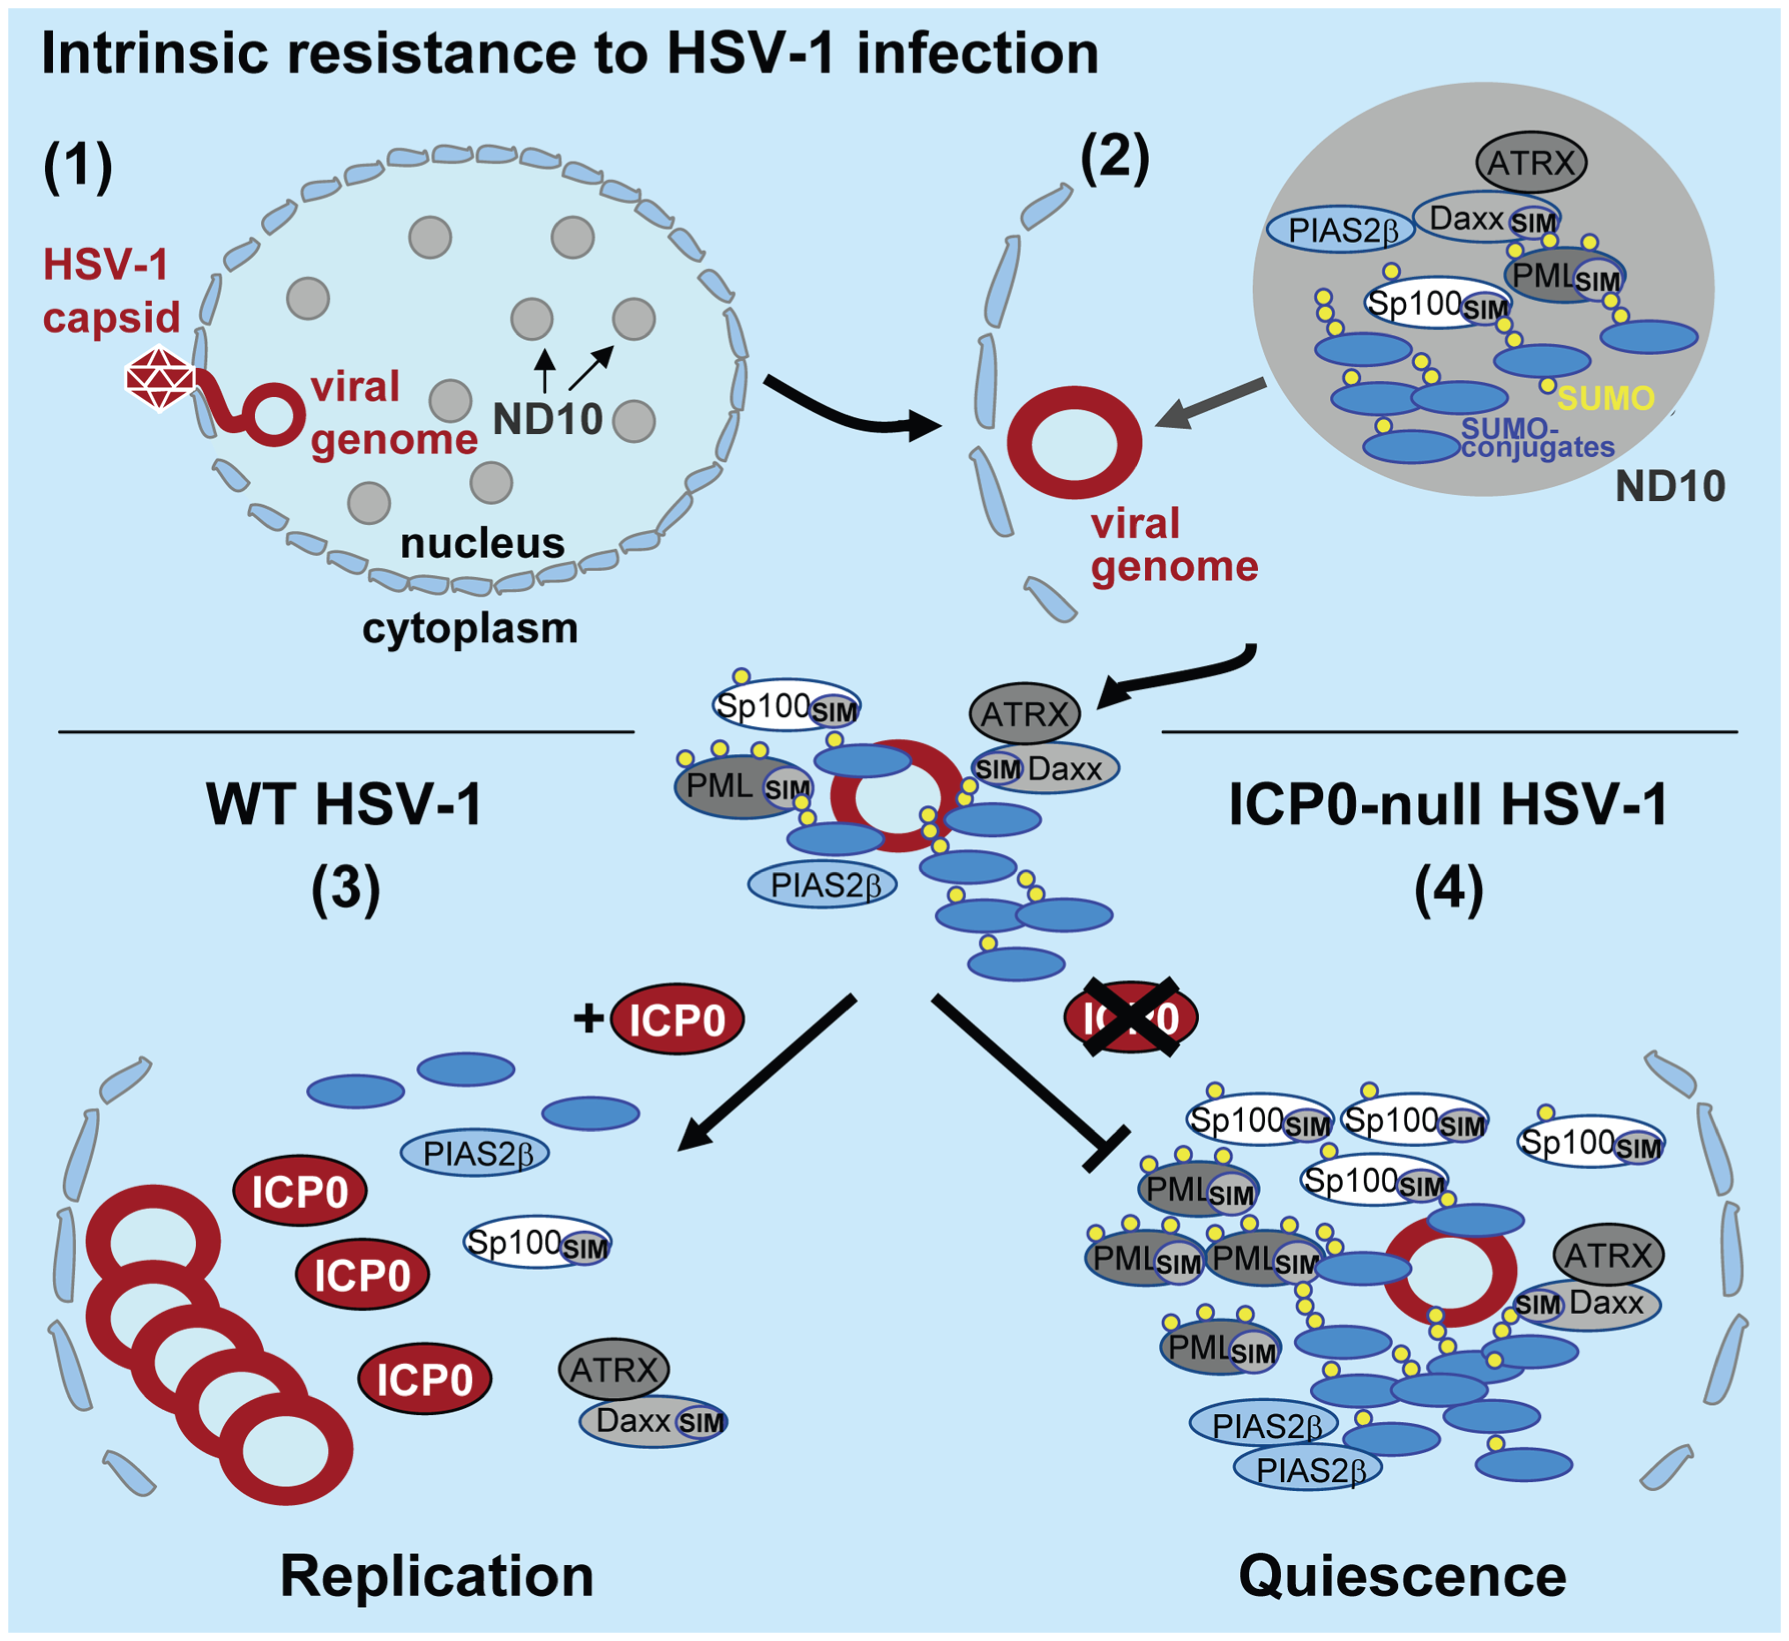 Model depicting the regulation of intrinsic antiviral resistance to HSV-1 infection mediated by the SUMO conjugation pathway.